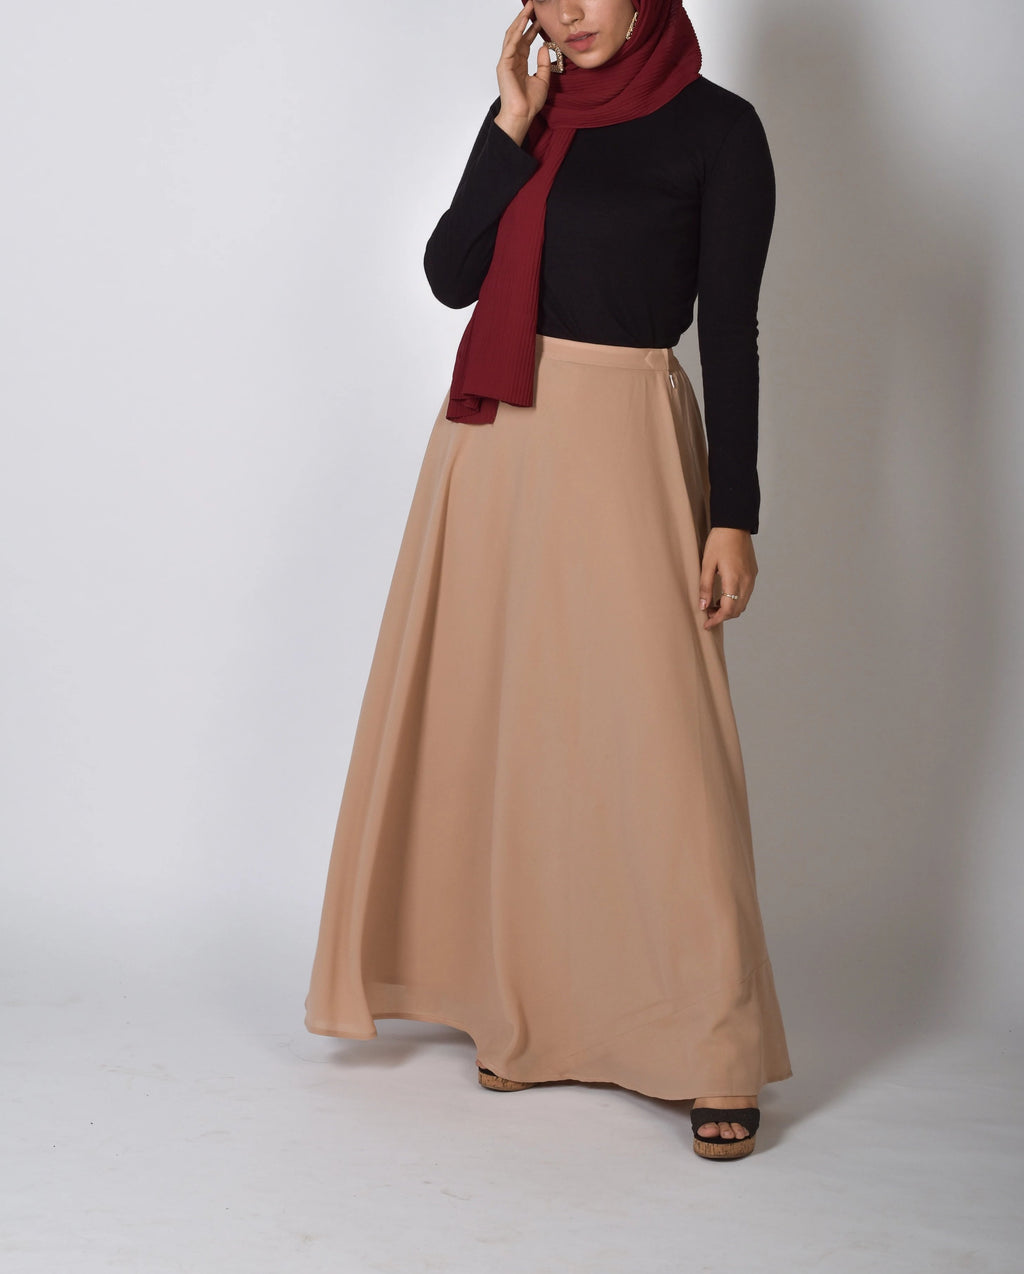 Cappuccino SassQueen High Waist Skirt - Modest Essentials